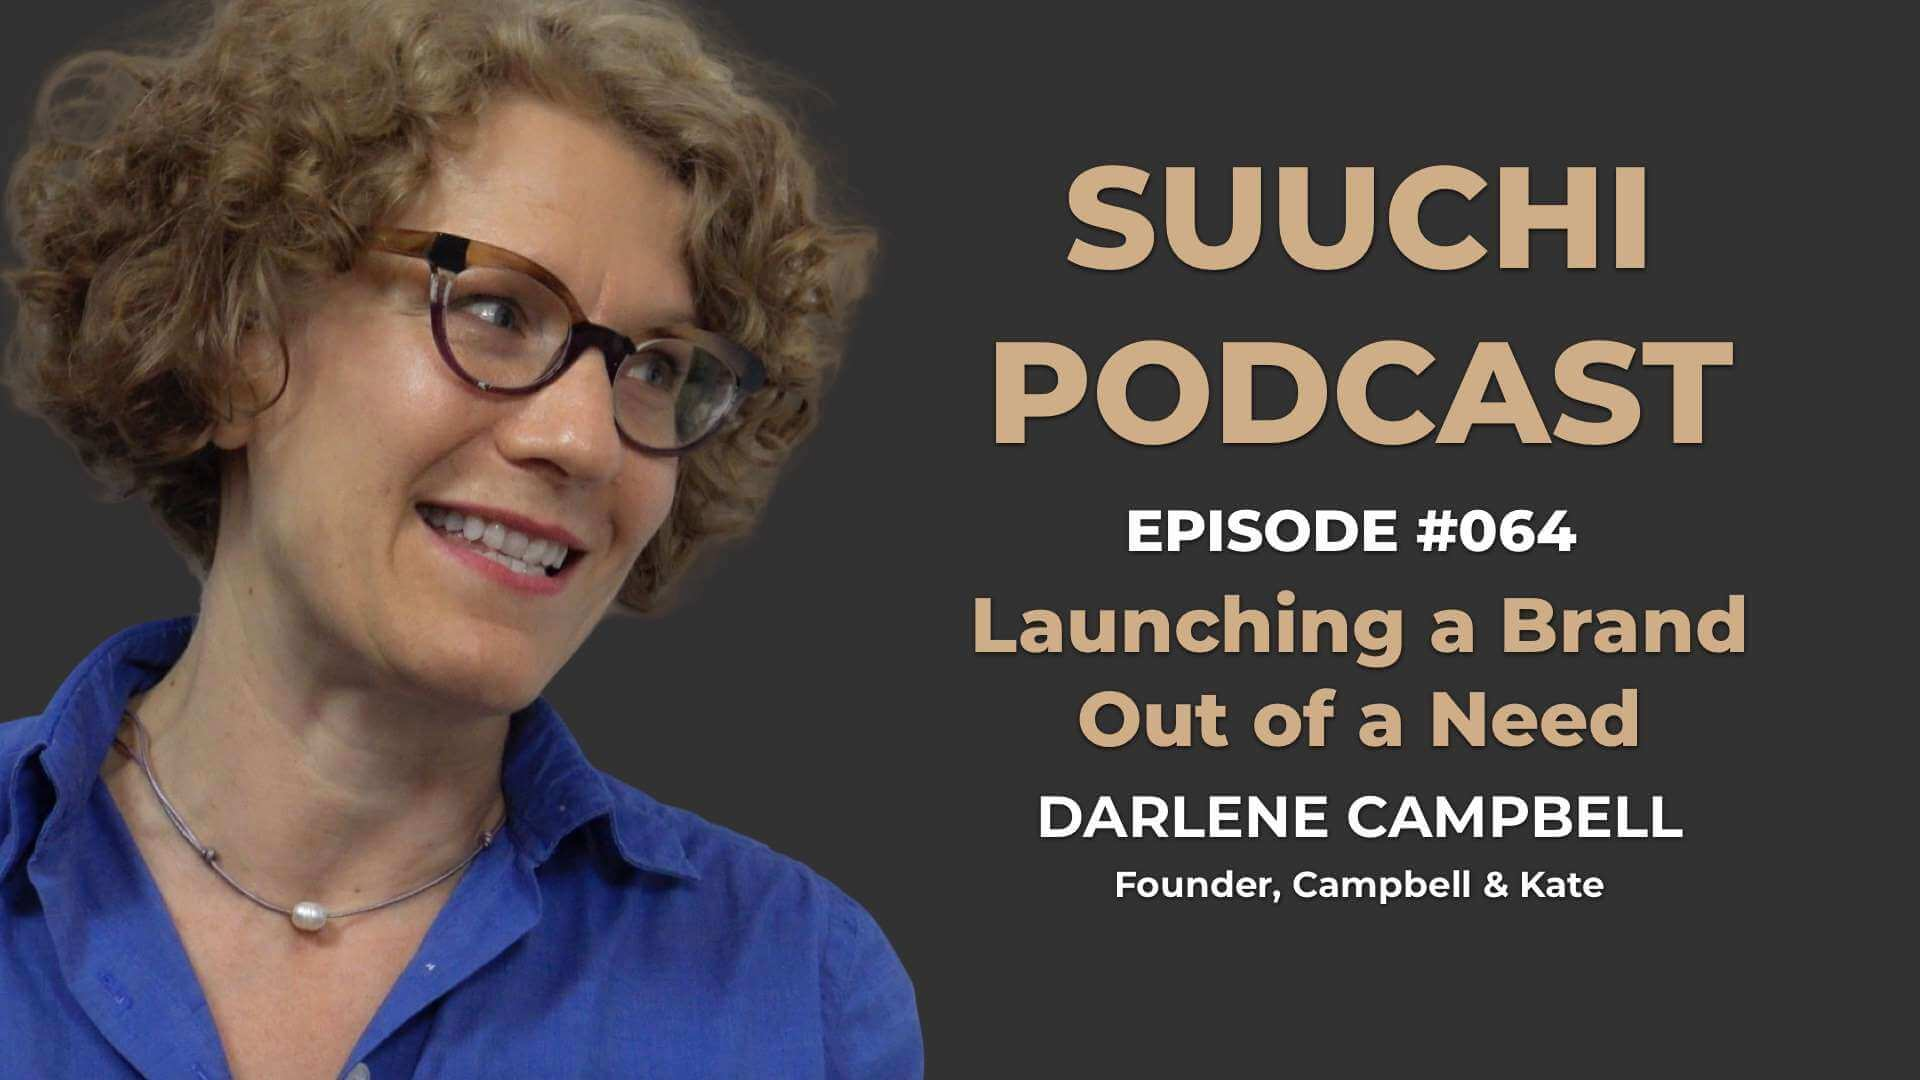 Suuchi Podcast #64: Darlene Campbell, Founder of Campbell & Kate, Launching a Brand Out of a Need